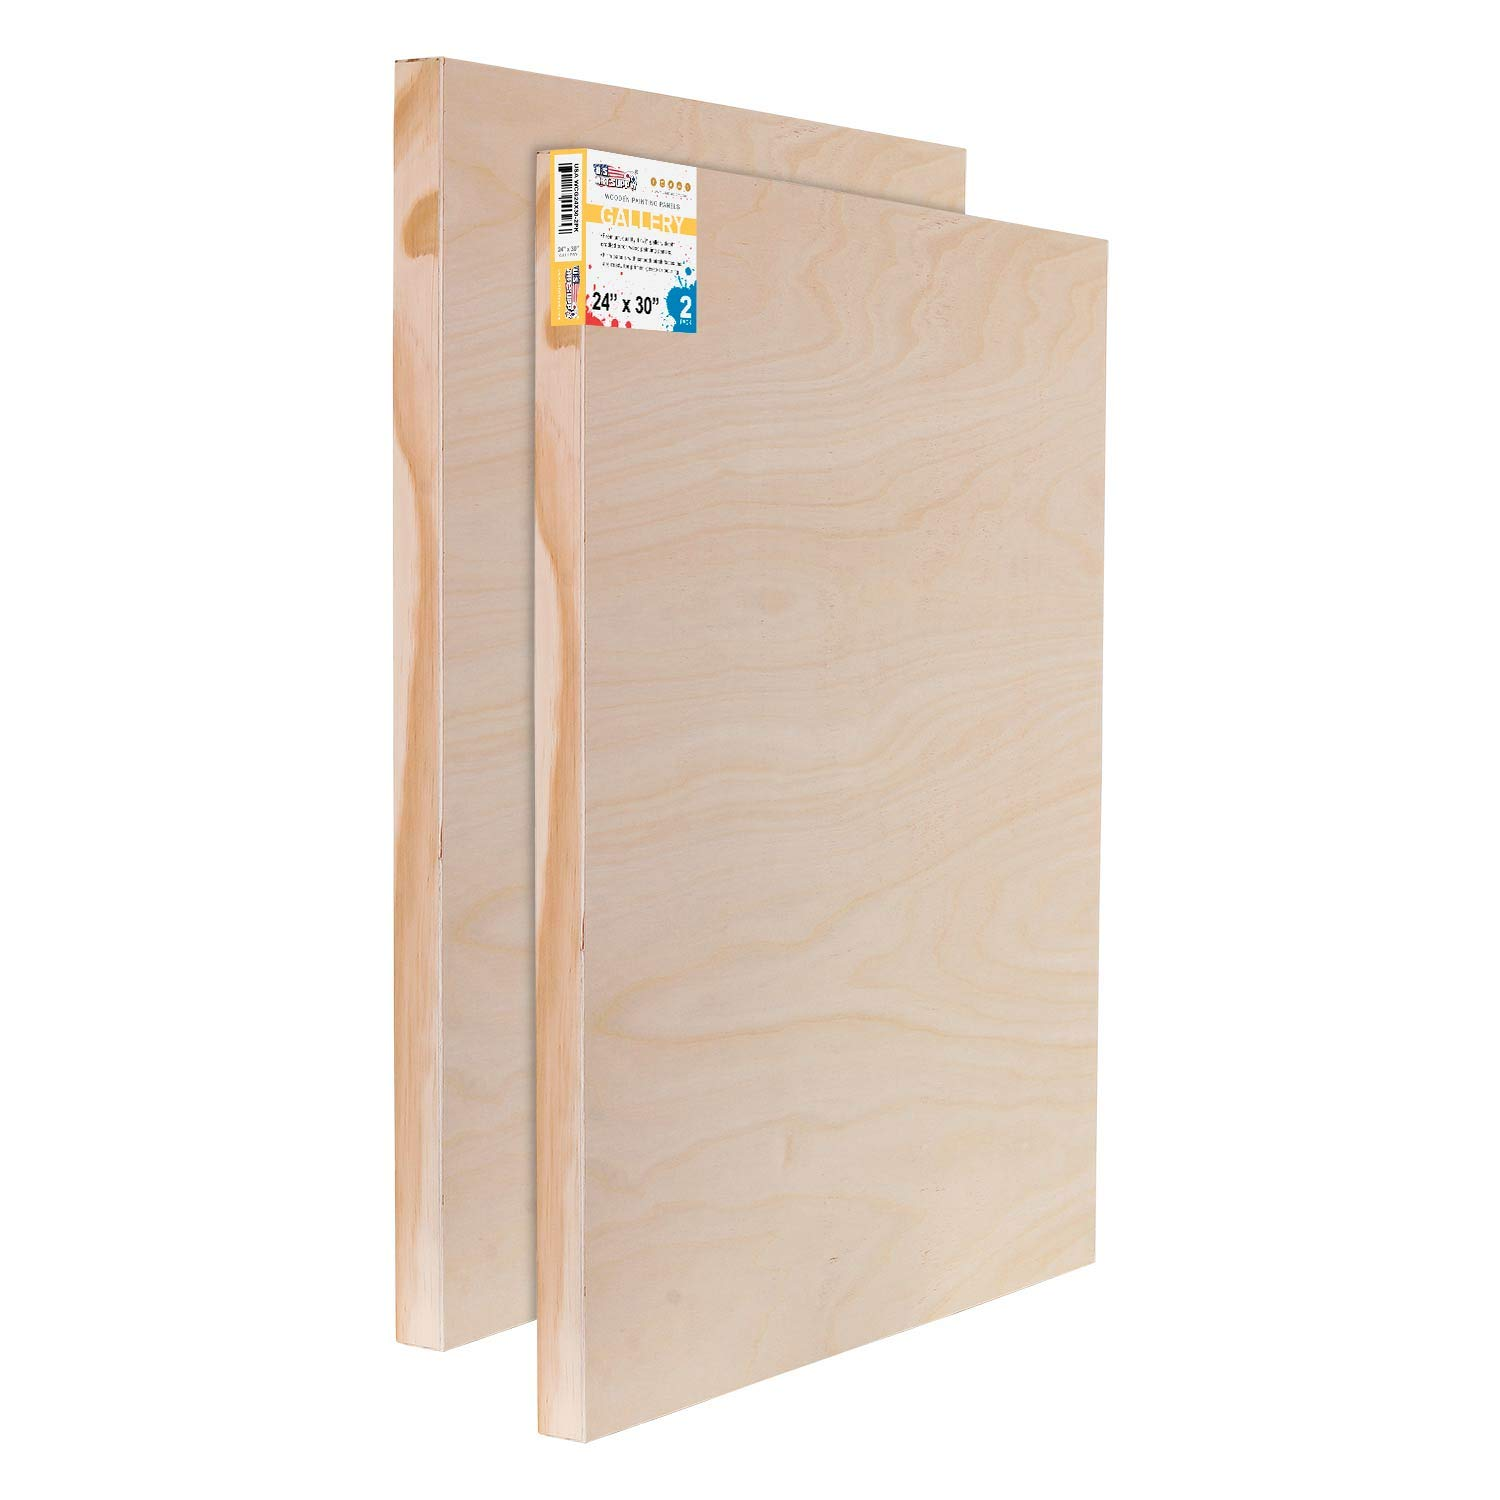 U.S. Art Supply 24'' x 30'' Birch Wood Paint Pouring Panel Boards, Gallery 1-1/2'' Deep Cradle (Pack of 2) - Artist Depth Wooden Wall Canvases - Painting Mixed-Media Craft, Acrylic, Oil, Encaustic